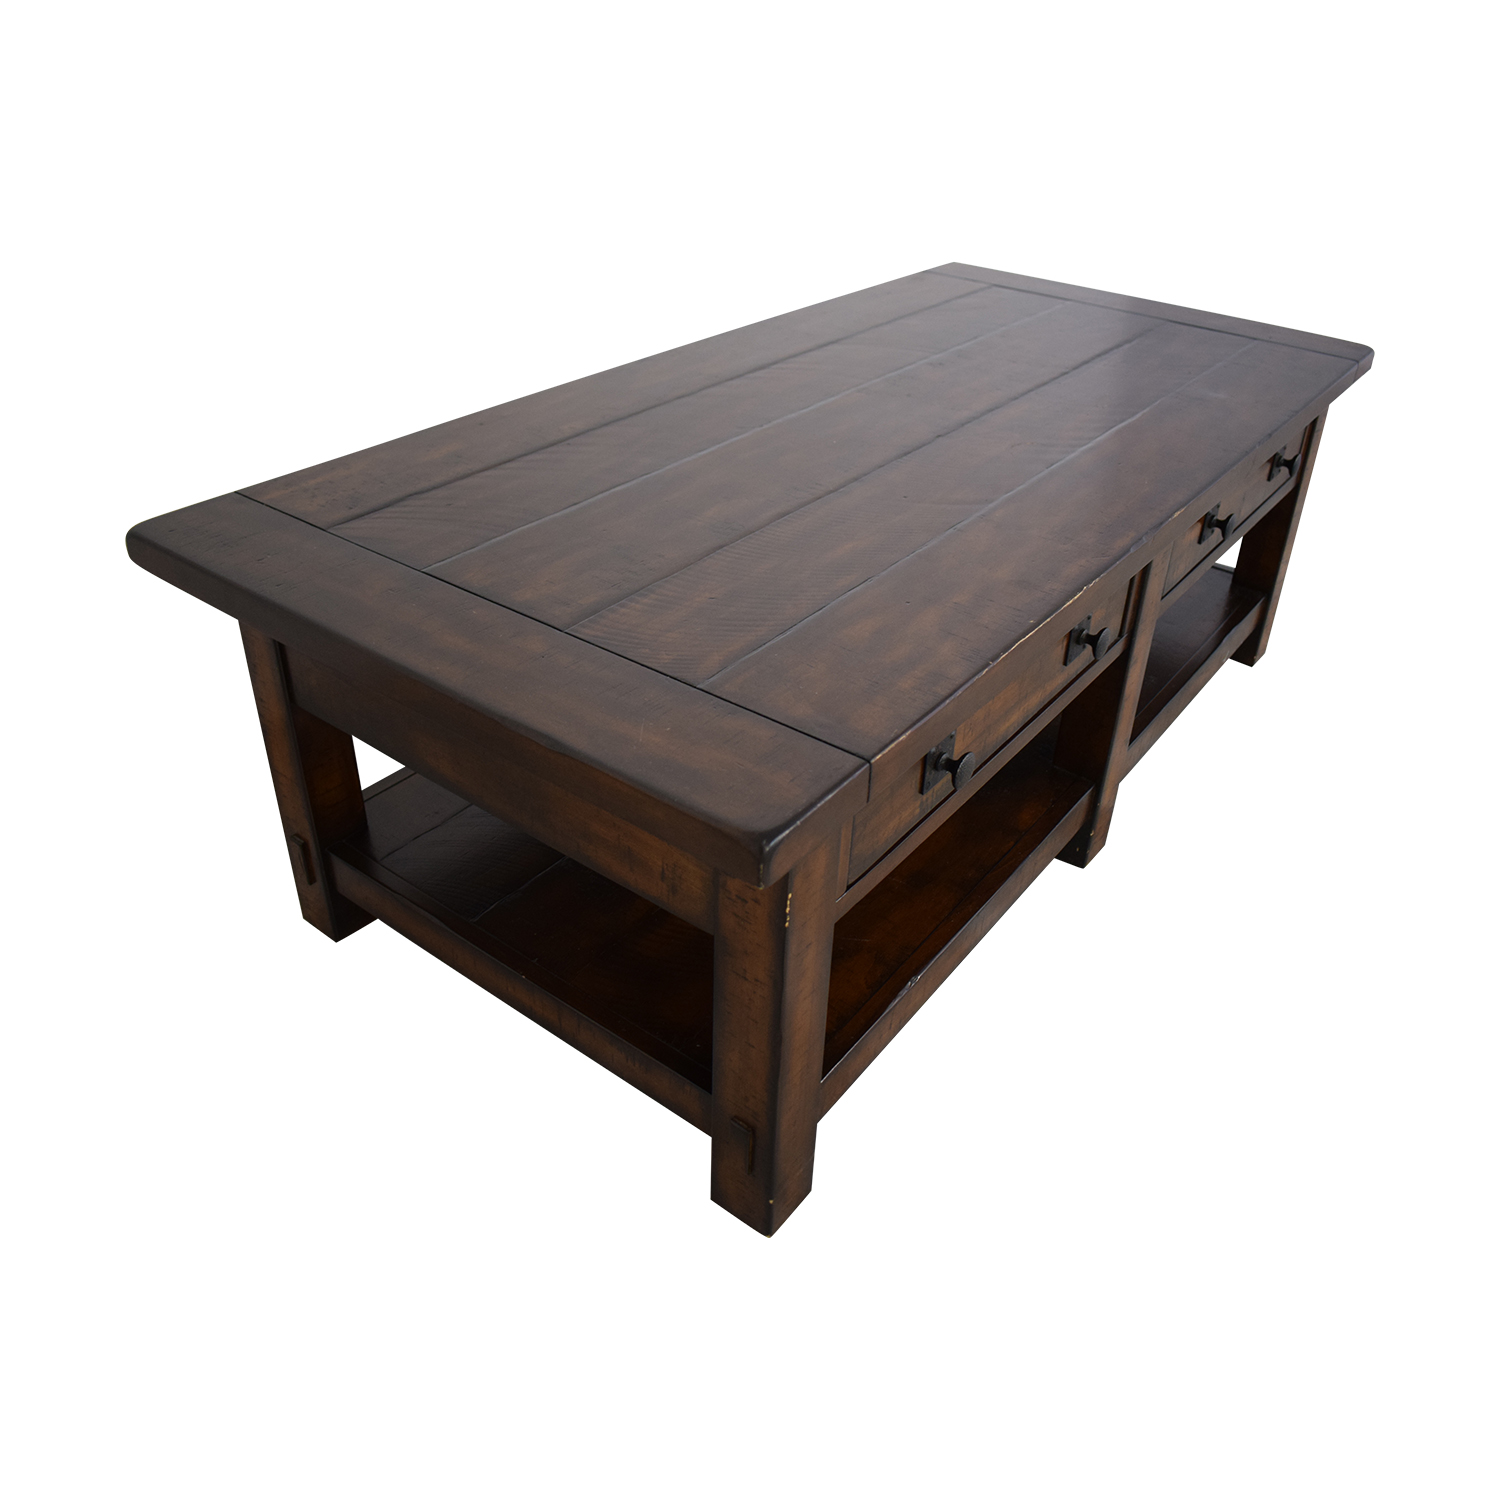 Pottery Barn Pottery Barn Benchwright Rectangular Coffee Table Coffee Tables